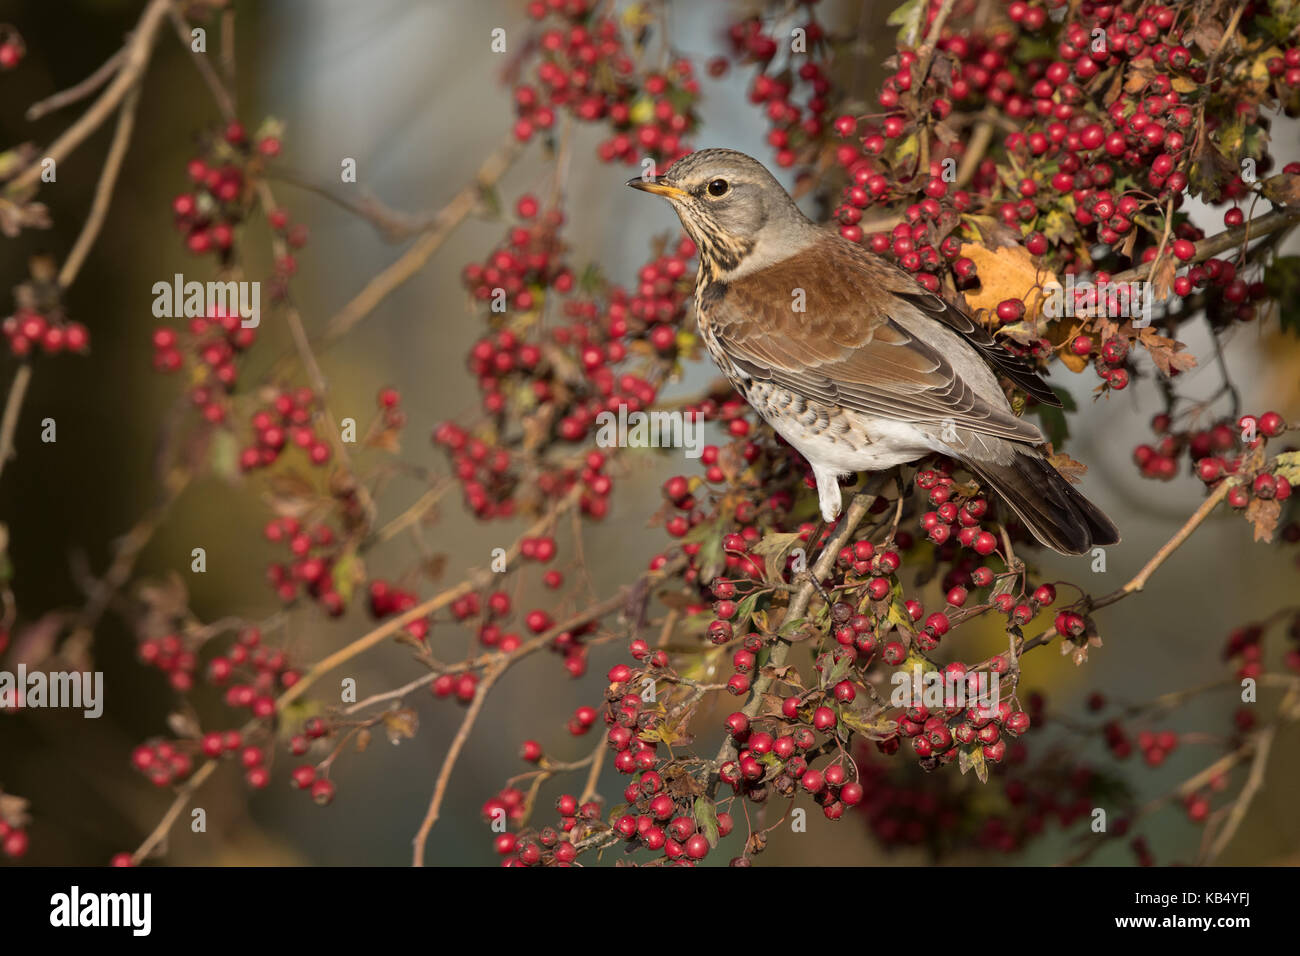 Fieldfare (Turdus pilaris) perched on a Hawthorn (Crataegus monogyna) full of berries, The Netherlands, Gelderland, - Stock Image